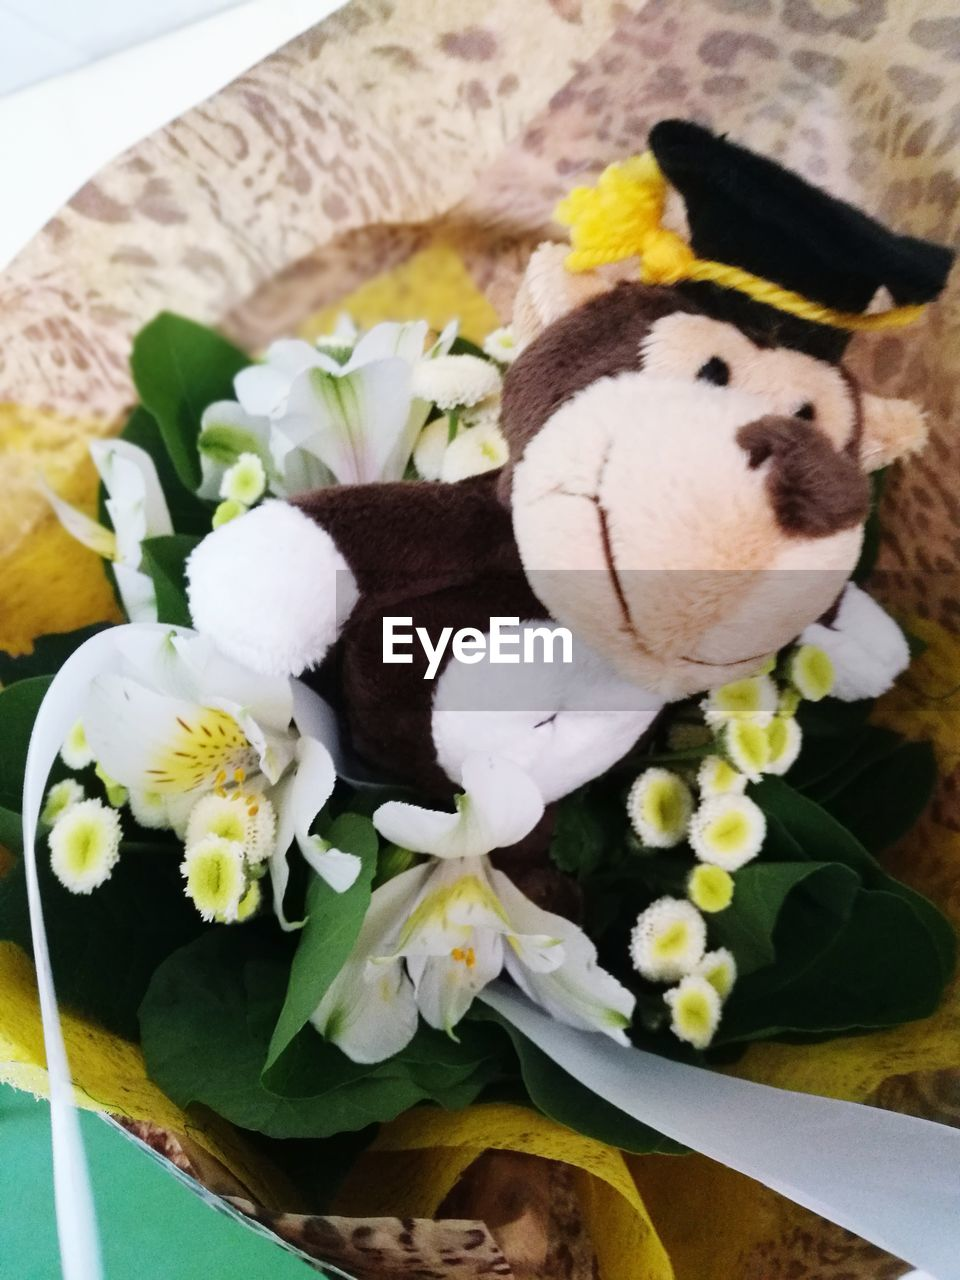 flower, stuffed toy, toy, indoors, teddy bear, no people, close-up, freshness, fragility, nature, day